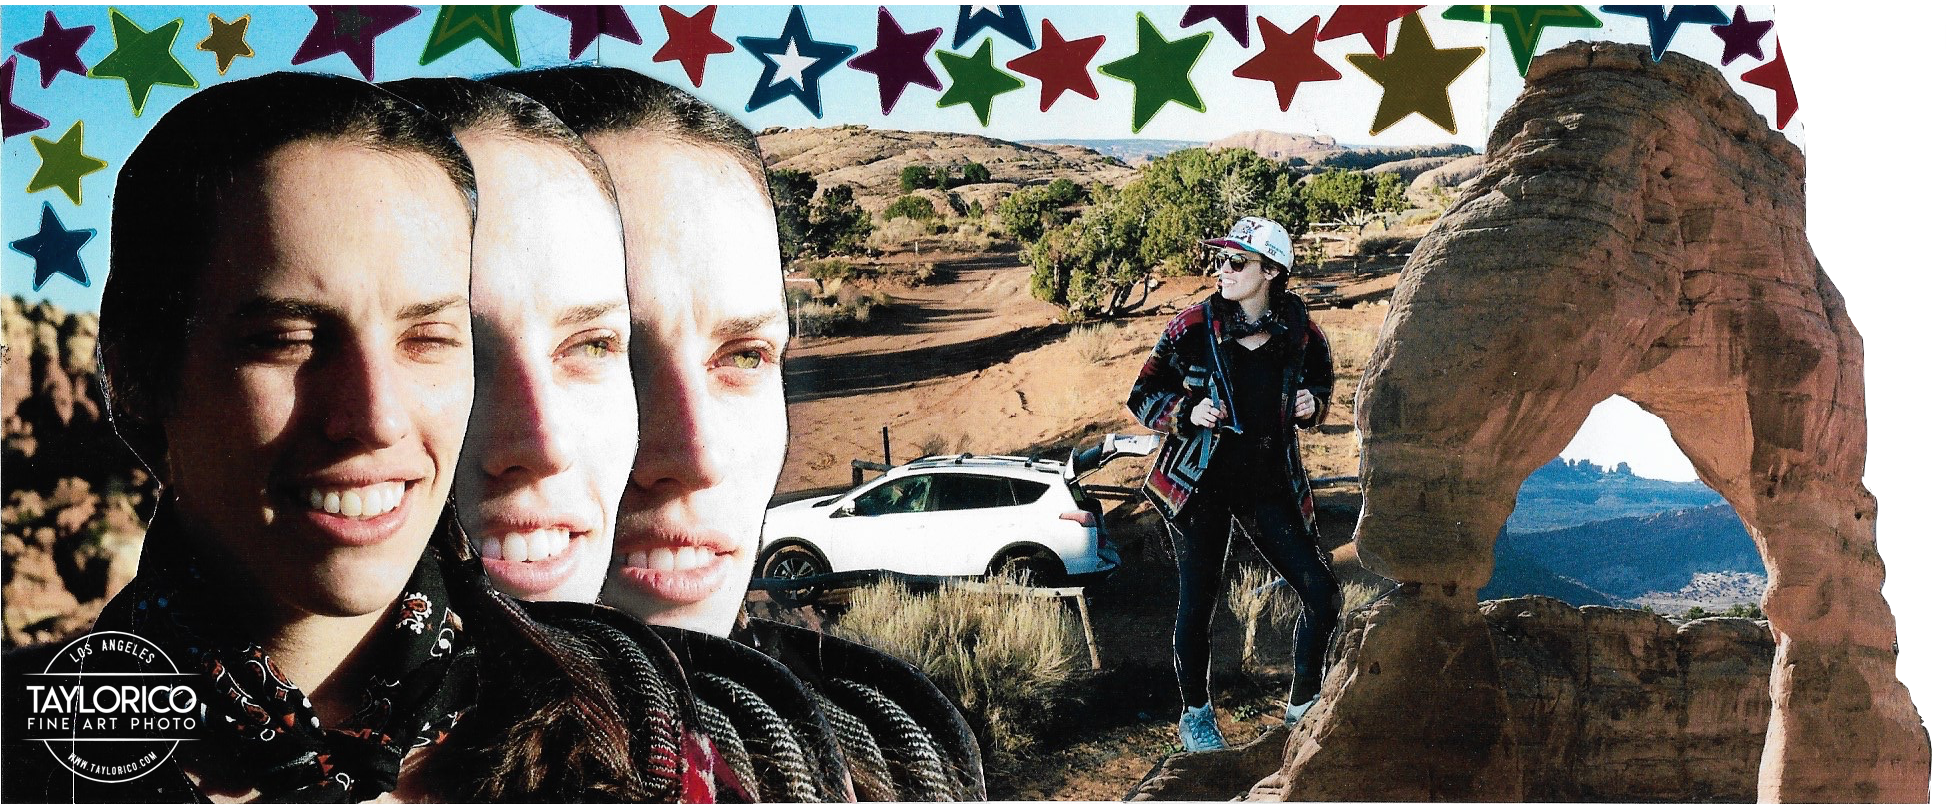 This collage was created using 35mm film photos, metallic star stickers,  an X-Acto knife, and rubber cement. Photos were captured in Moab, Utah  (namely Arches National Park and Canyonlands National Park).